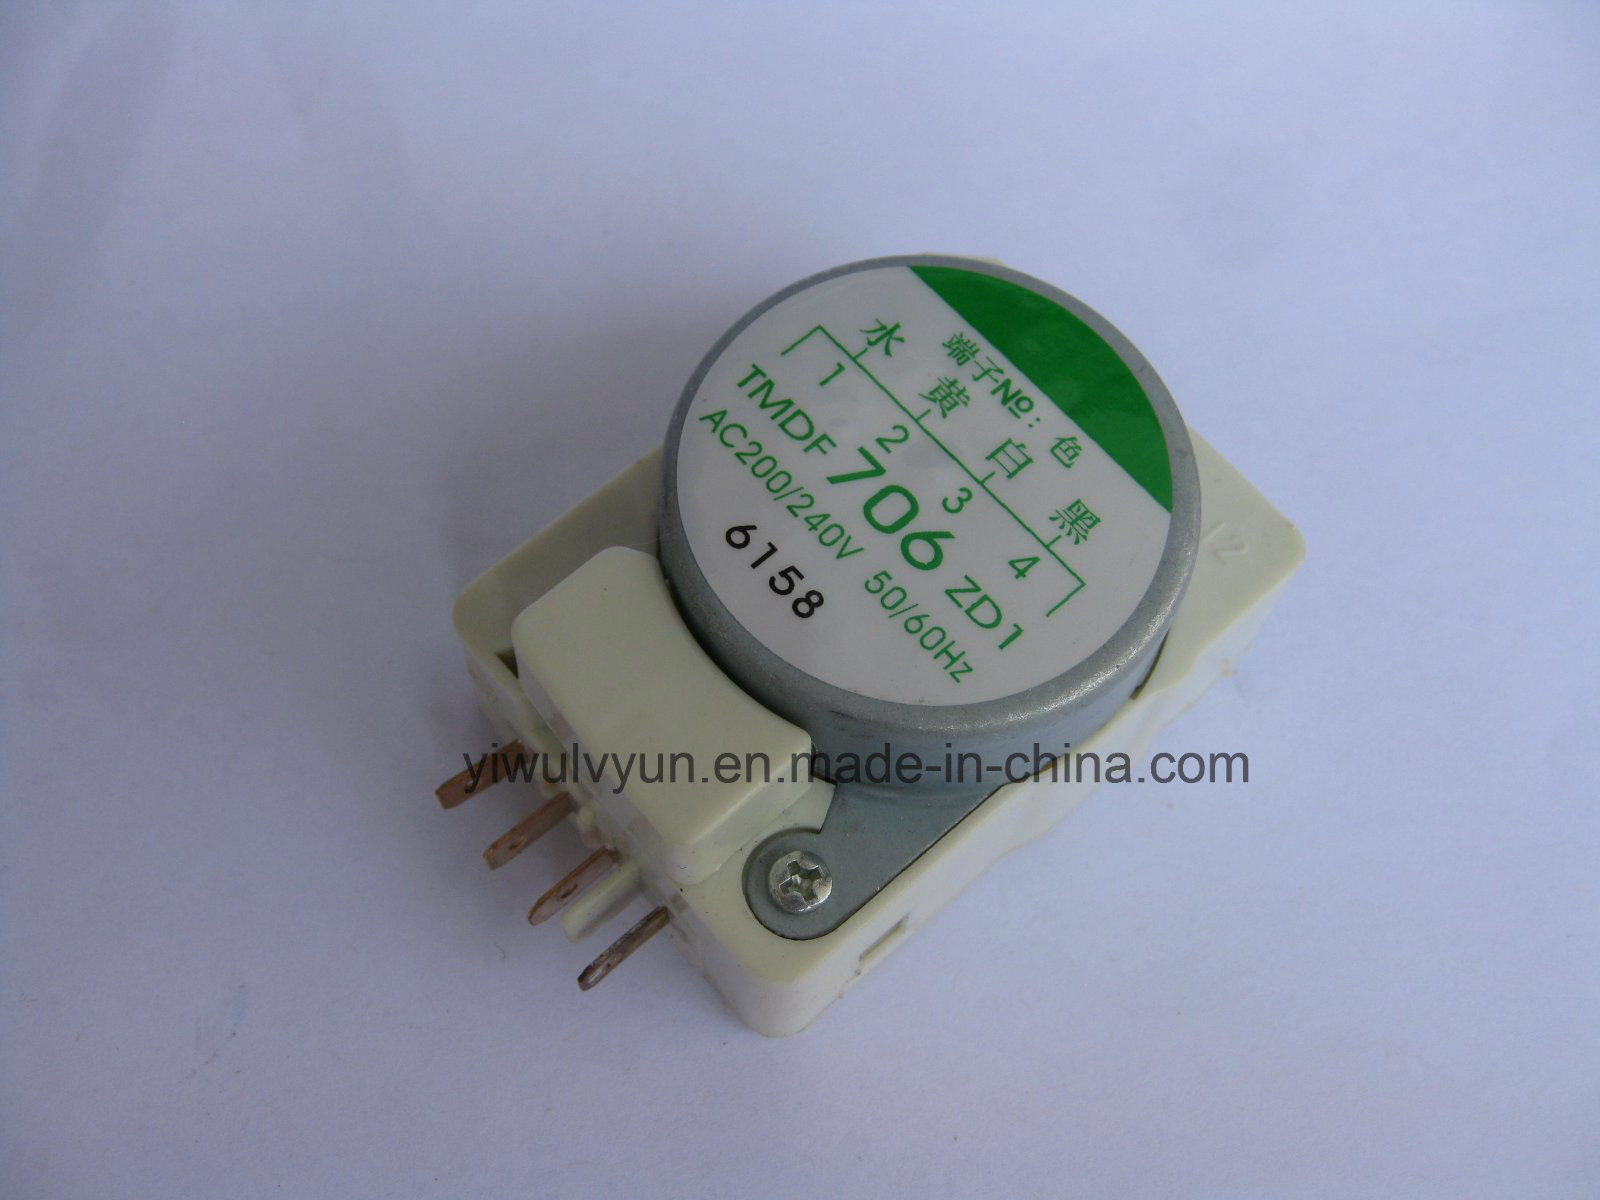 Tmdf Universal Electronic Refrigerator Defrost Timer